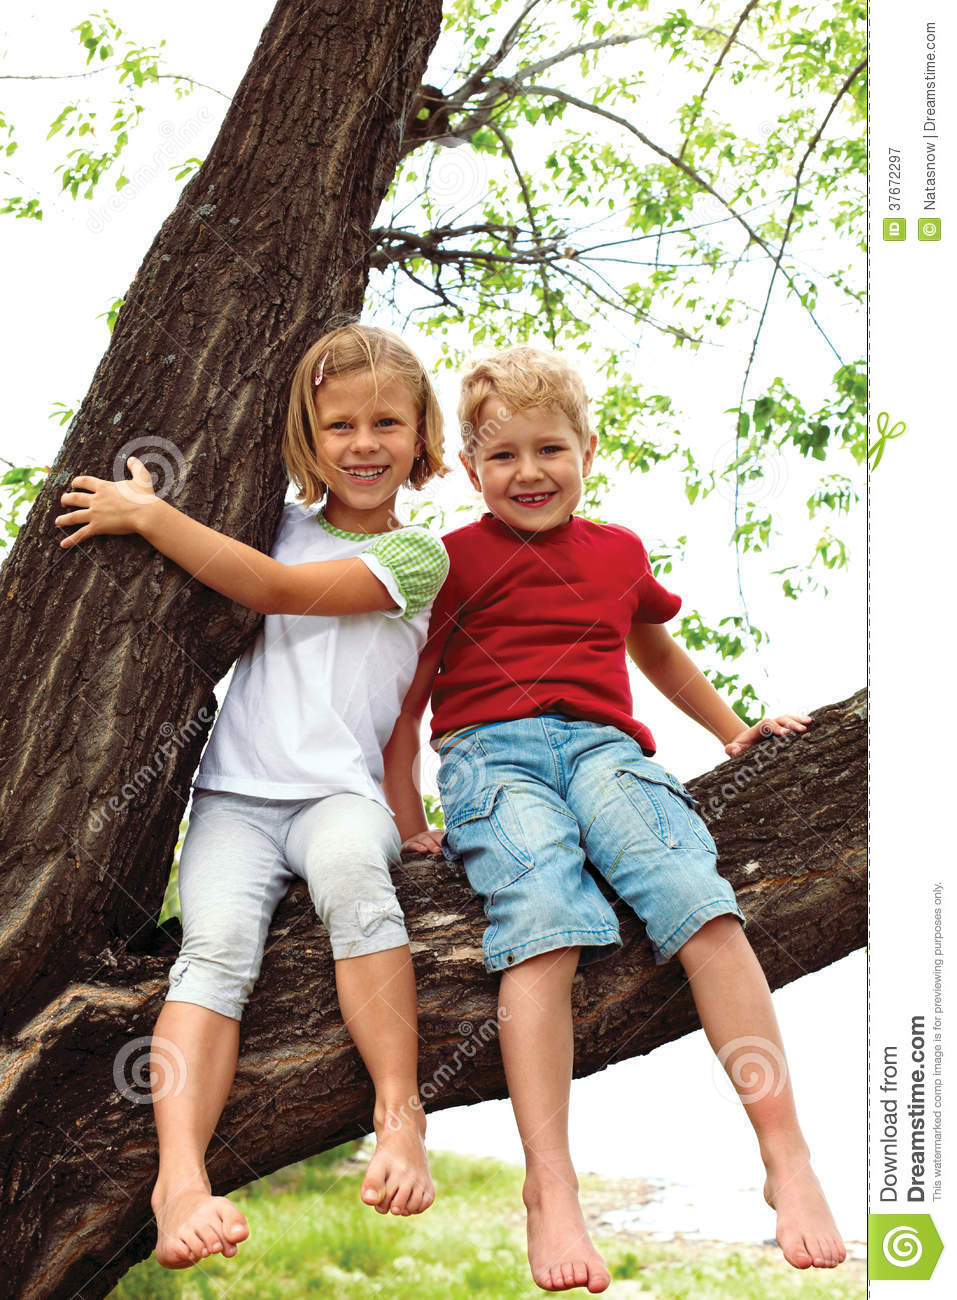 Boy And Girl Bedroom Decor: Boy And Girl Sitting On A Tree Stock Image